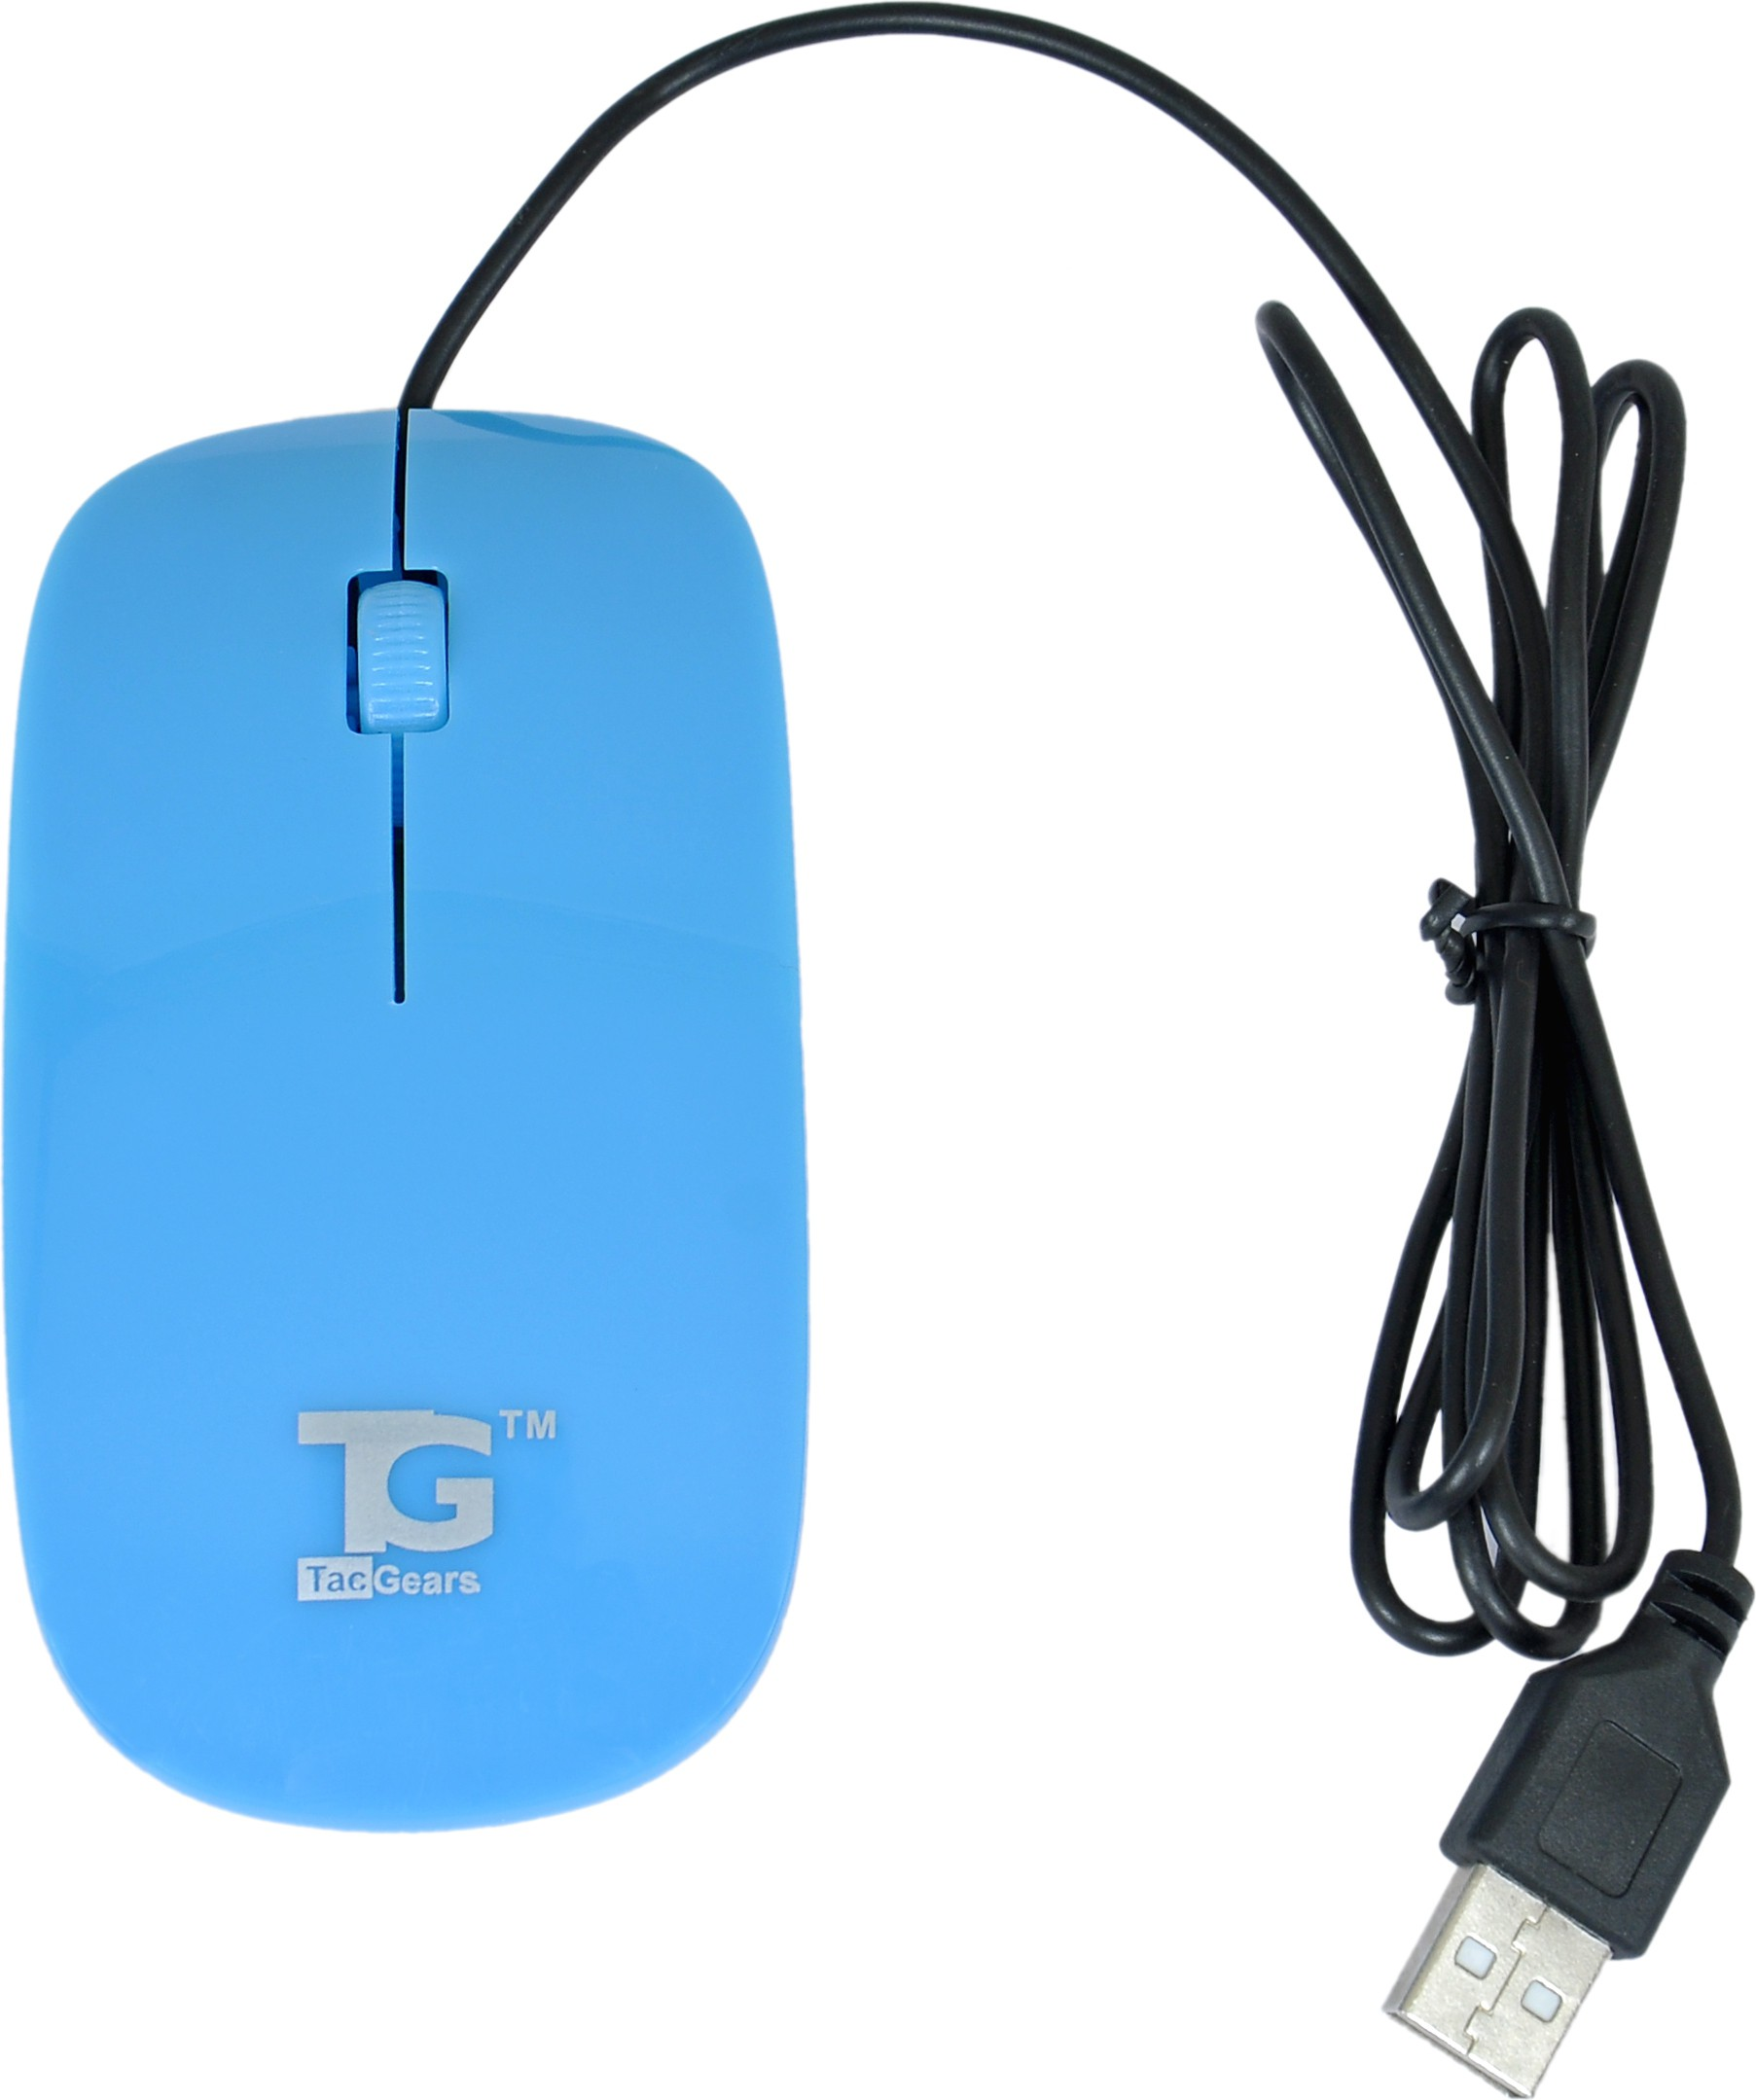 TacGears TG-6004s Wired Optical Mouse Gaming Mouse(USB, Blue) image